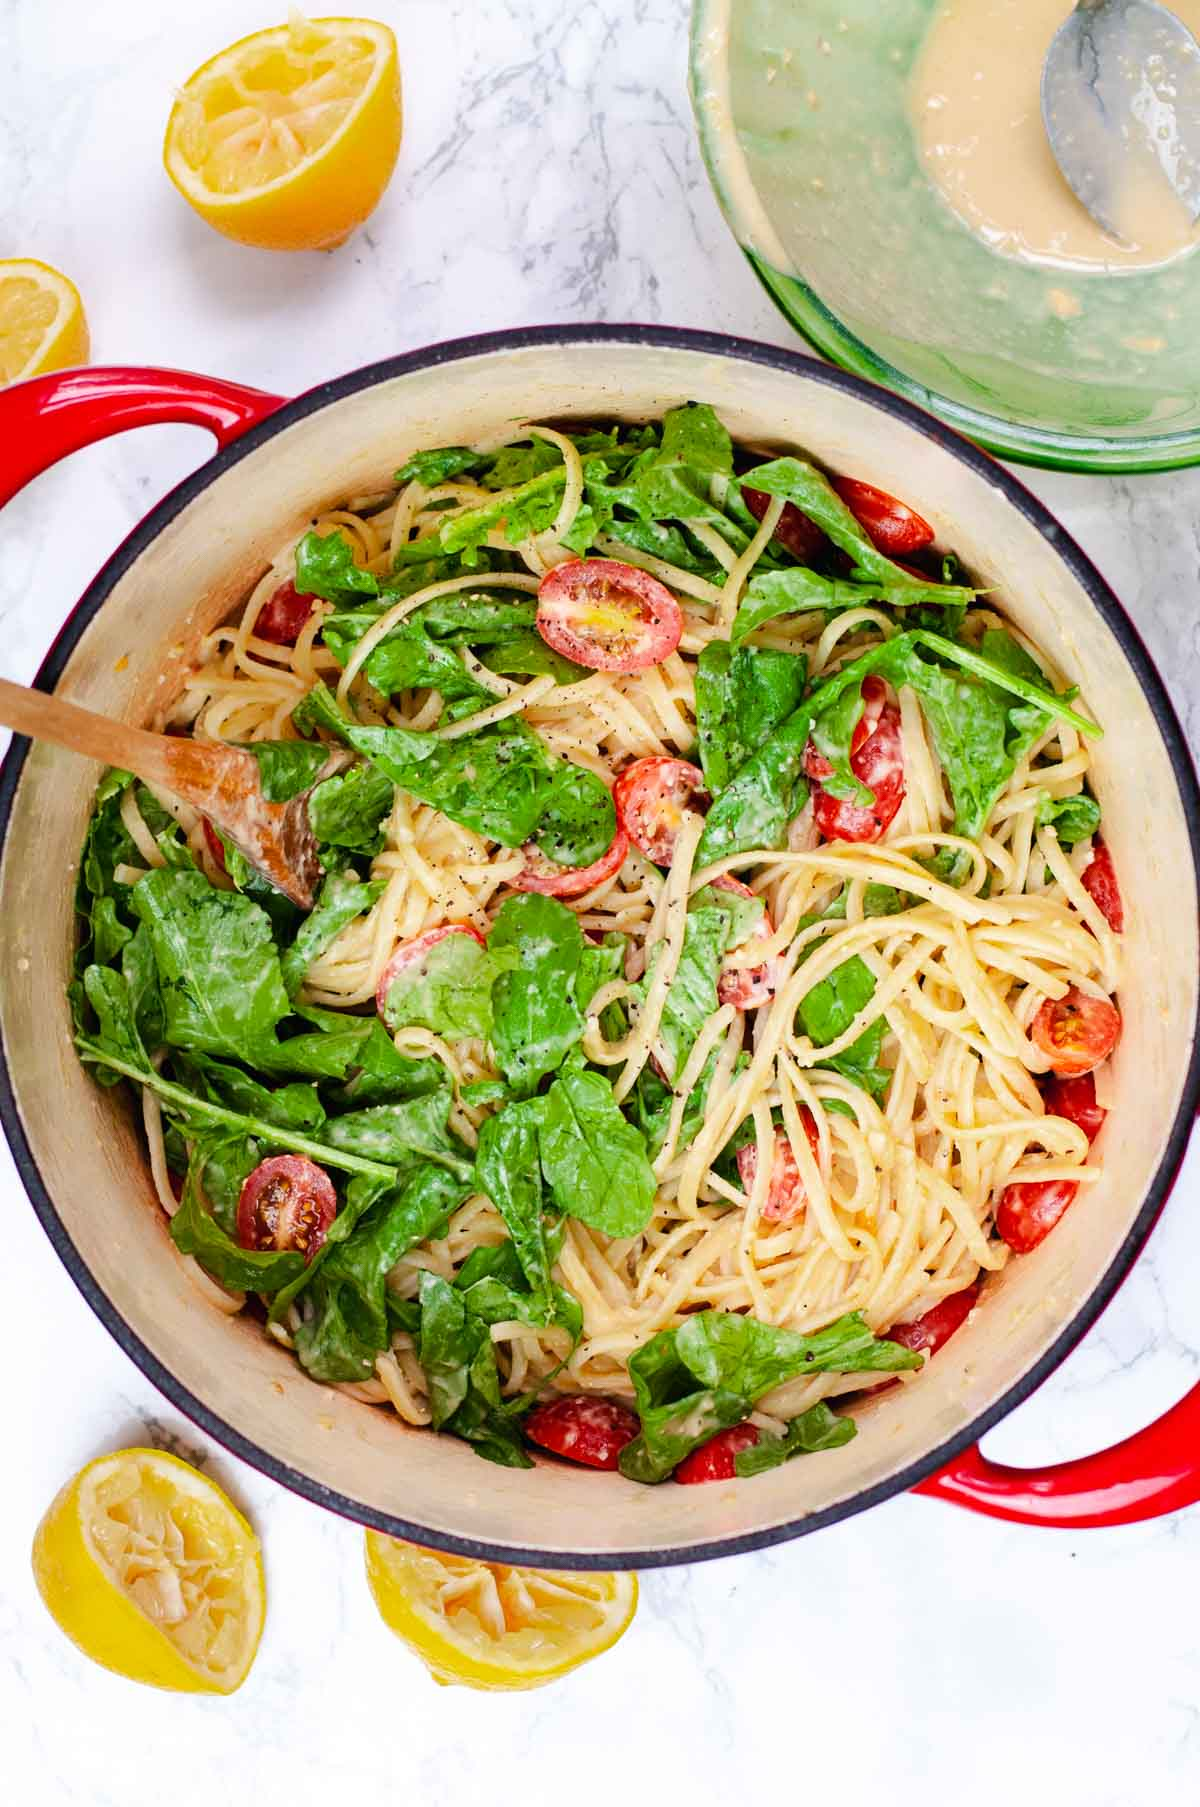 Overhead view of red dutch oven filled with hummus pasta, arugula and sliced tomatoes